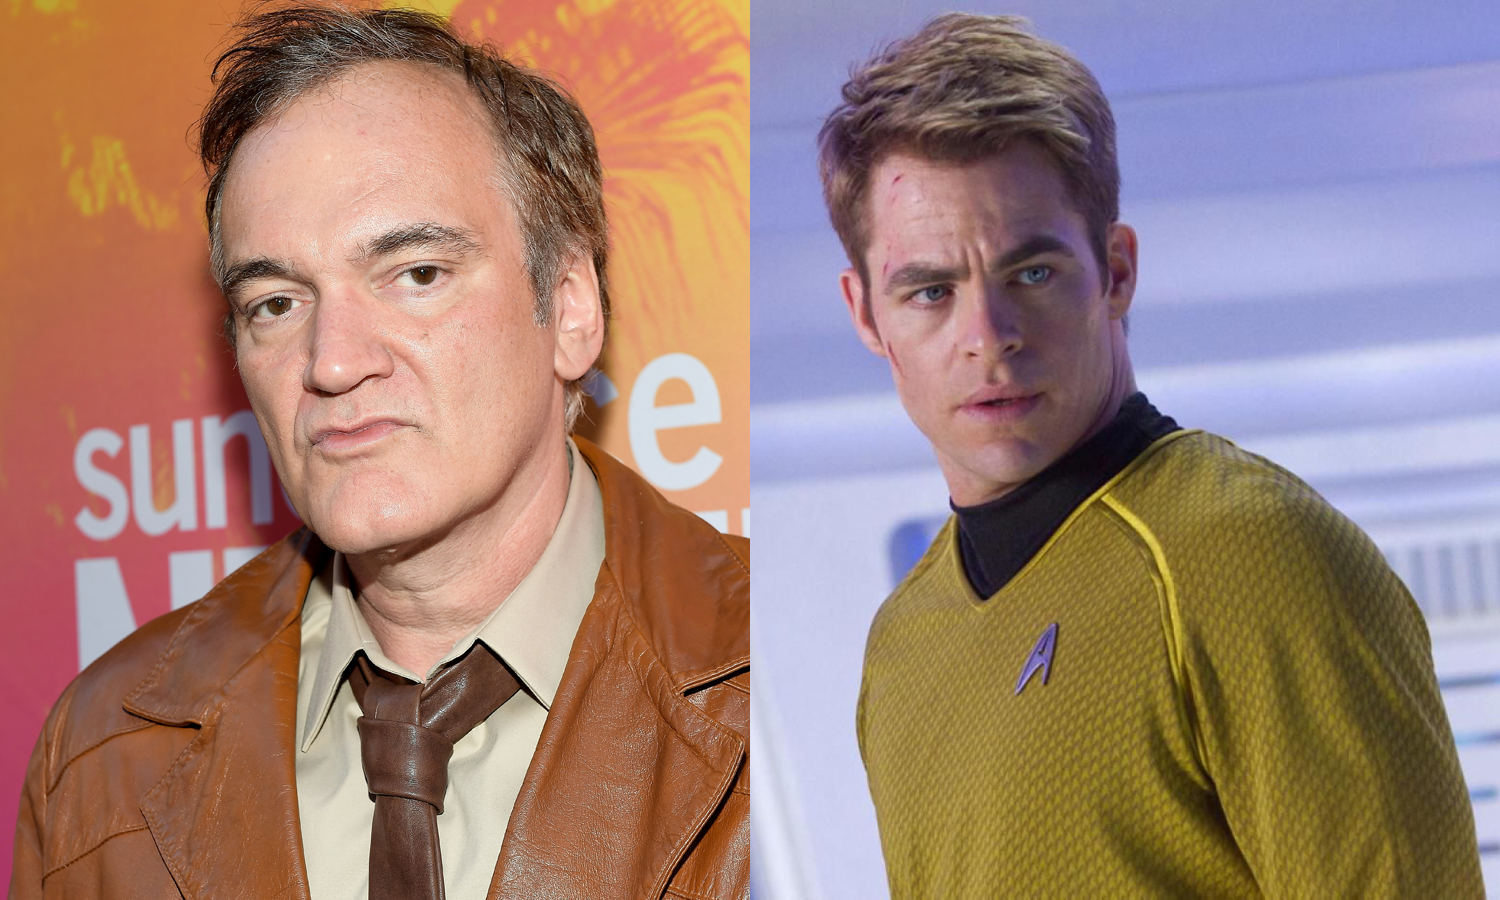 Quentin Tarantino reportedly developing new Star Trek movie with JJ Abrams producing